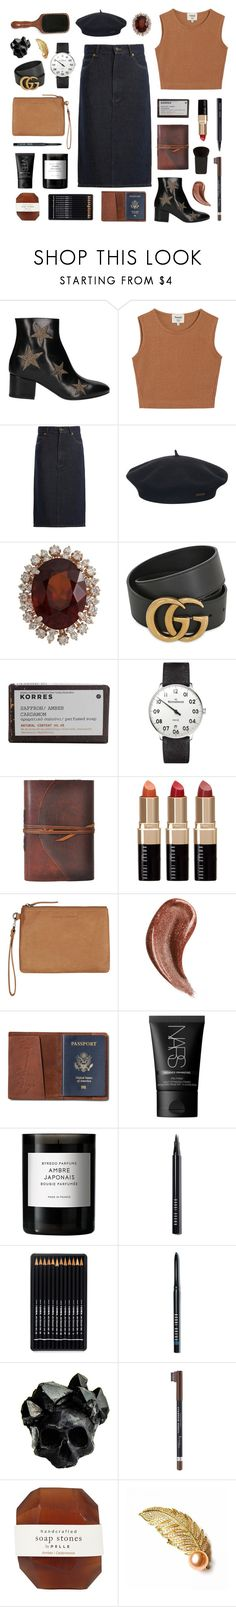 """capricorn"" by typicalgemini ❤ liked on Polyvore featuring Coliàc Martina Grasselli, Samuji, Raey, Element, Gucci, Korres, MeisterSinger, Bobbi Brown Cosmetics, Status Anxiety and TOMS"